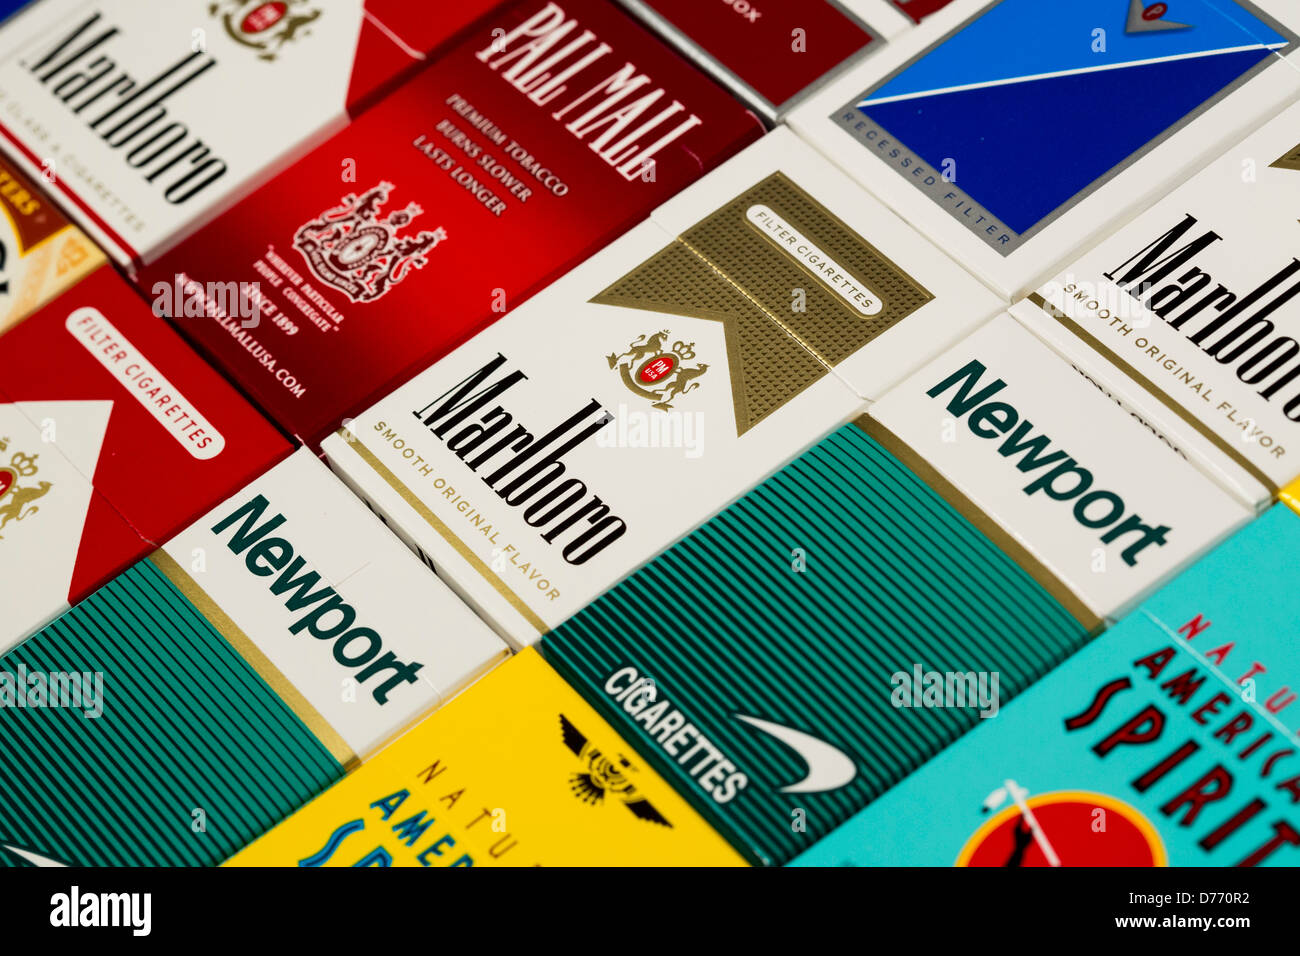 Buy LM cigarette cartons